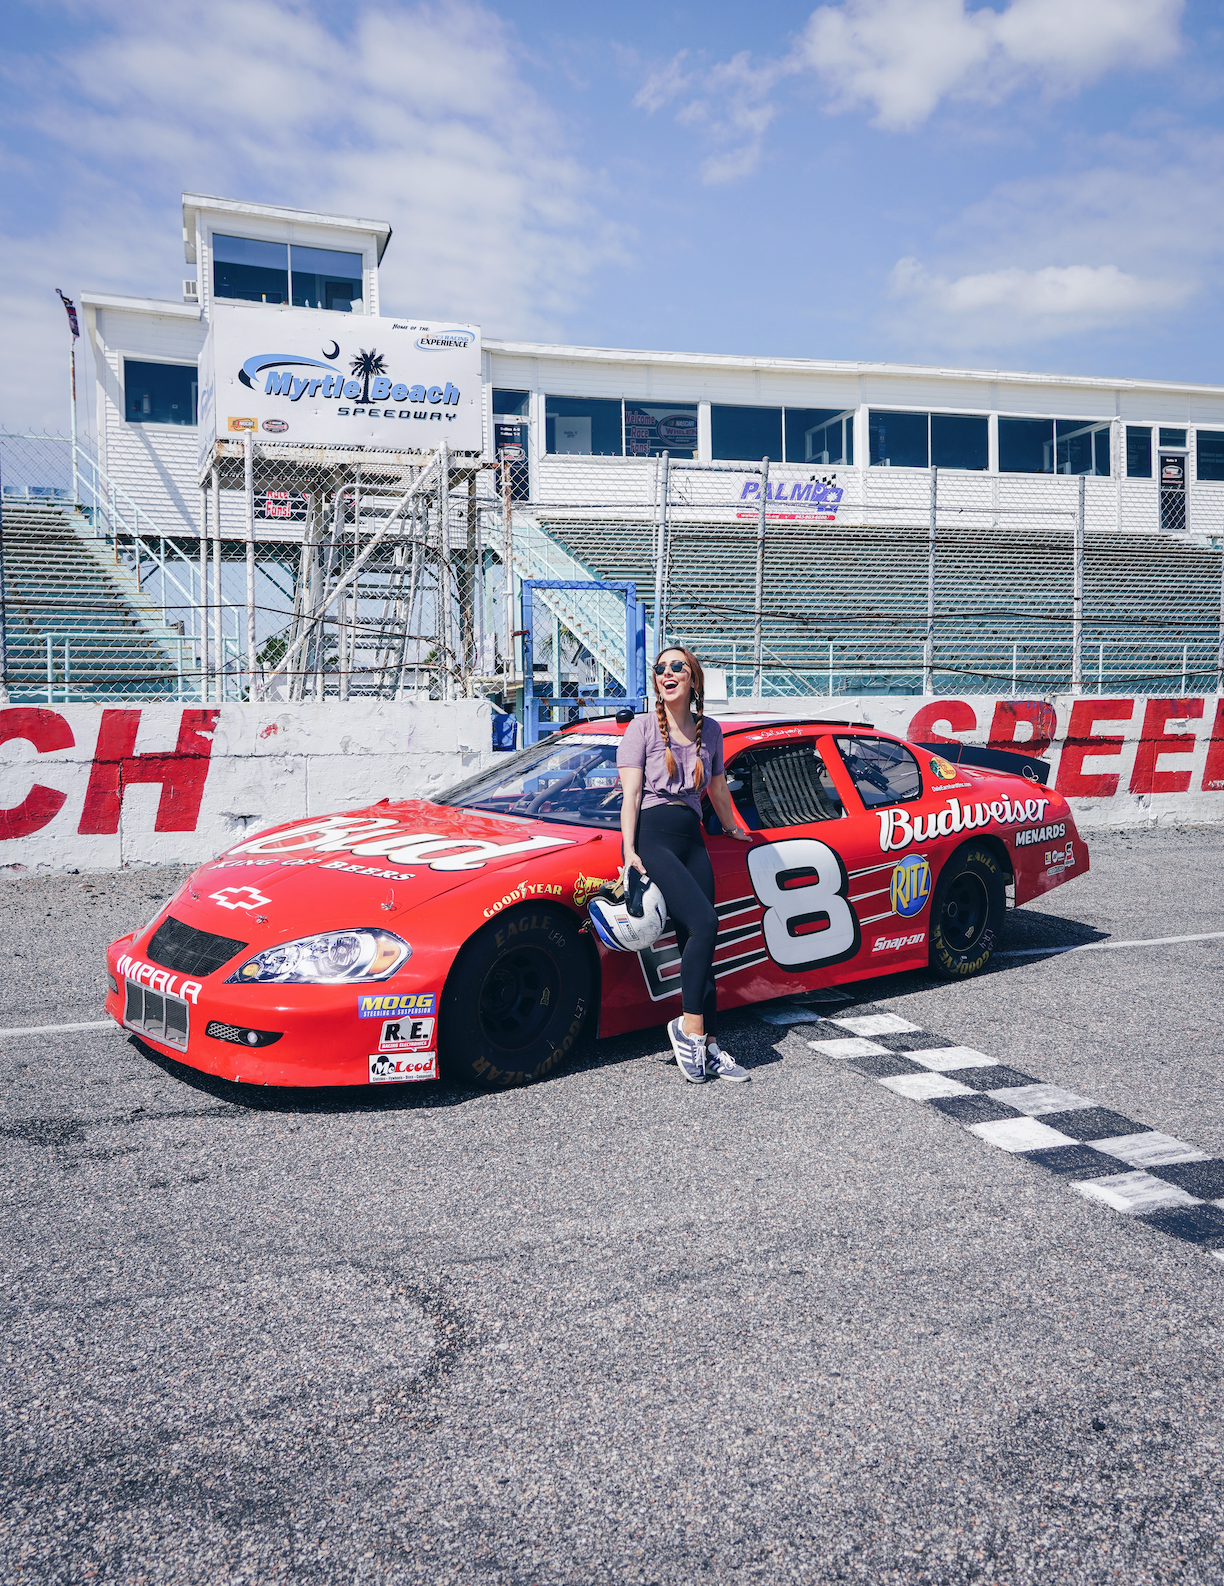 NASCAR Experience fun things to do myrtle beach